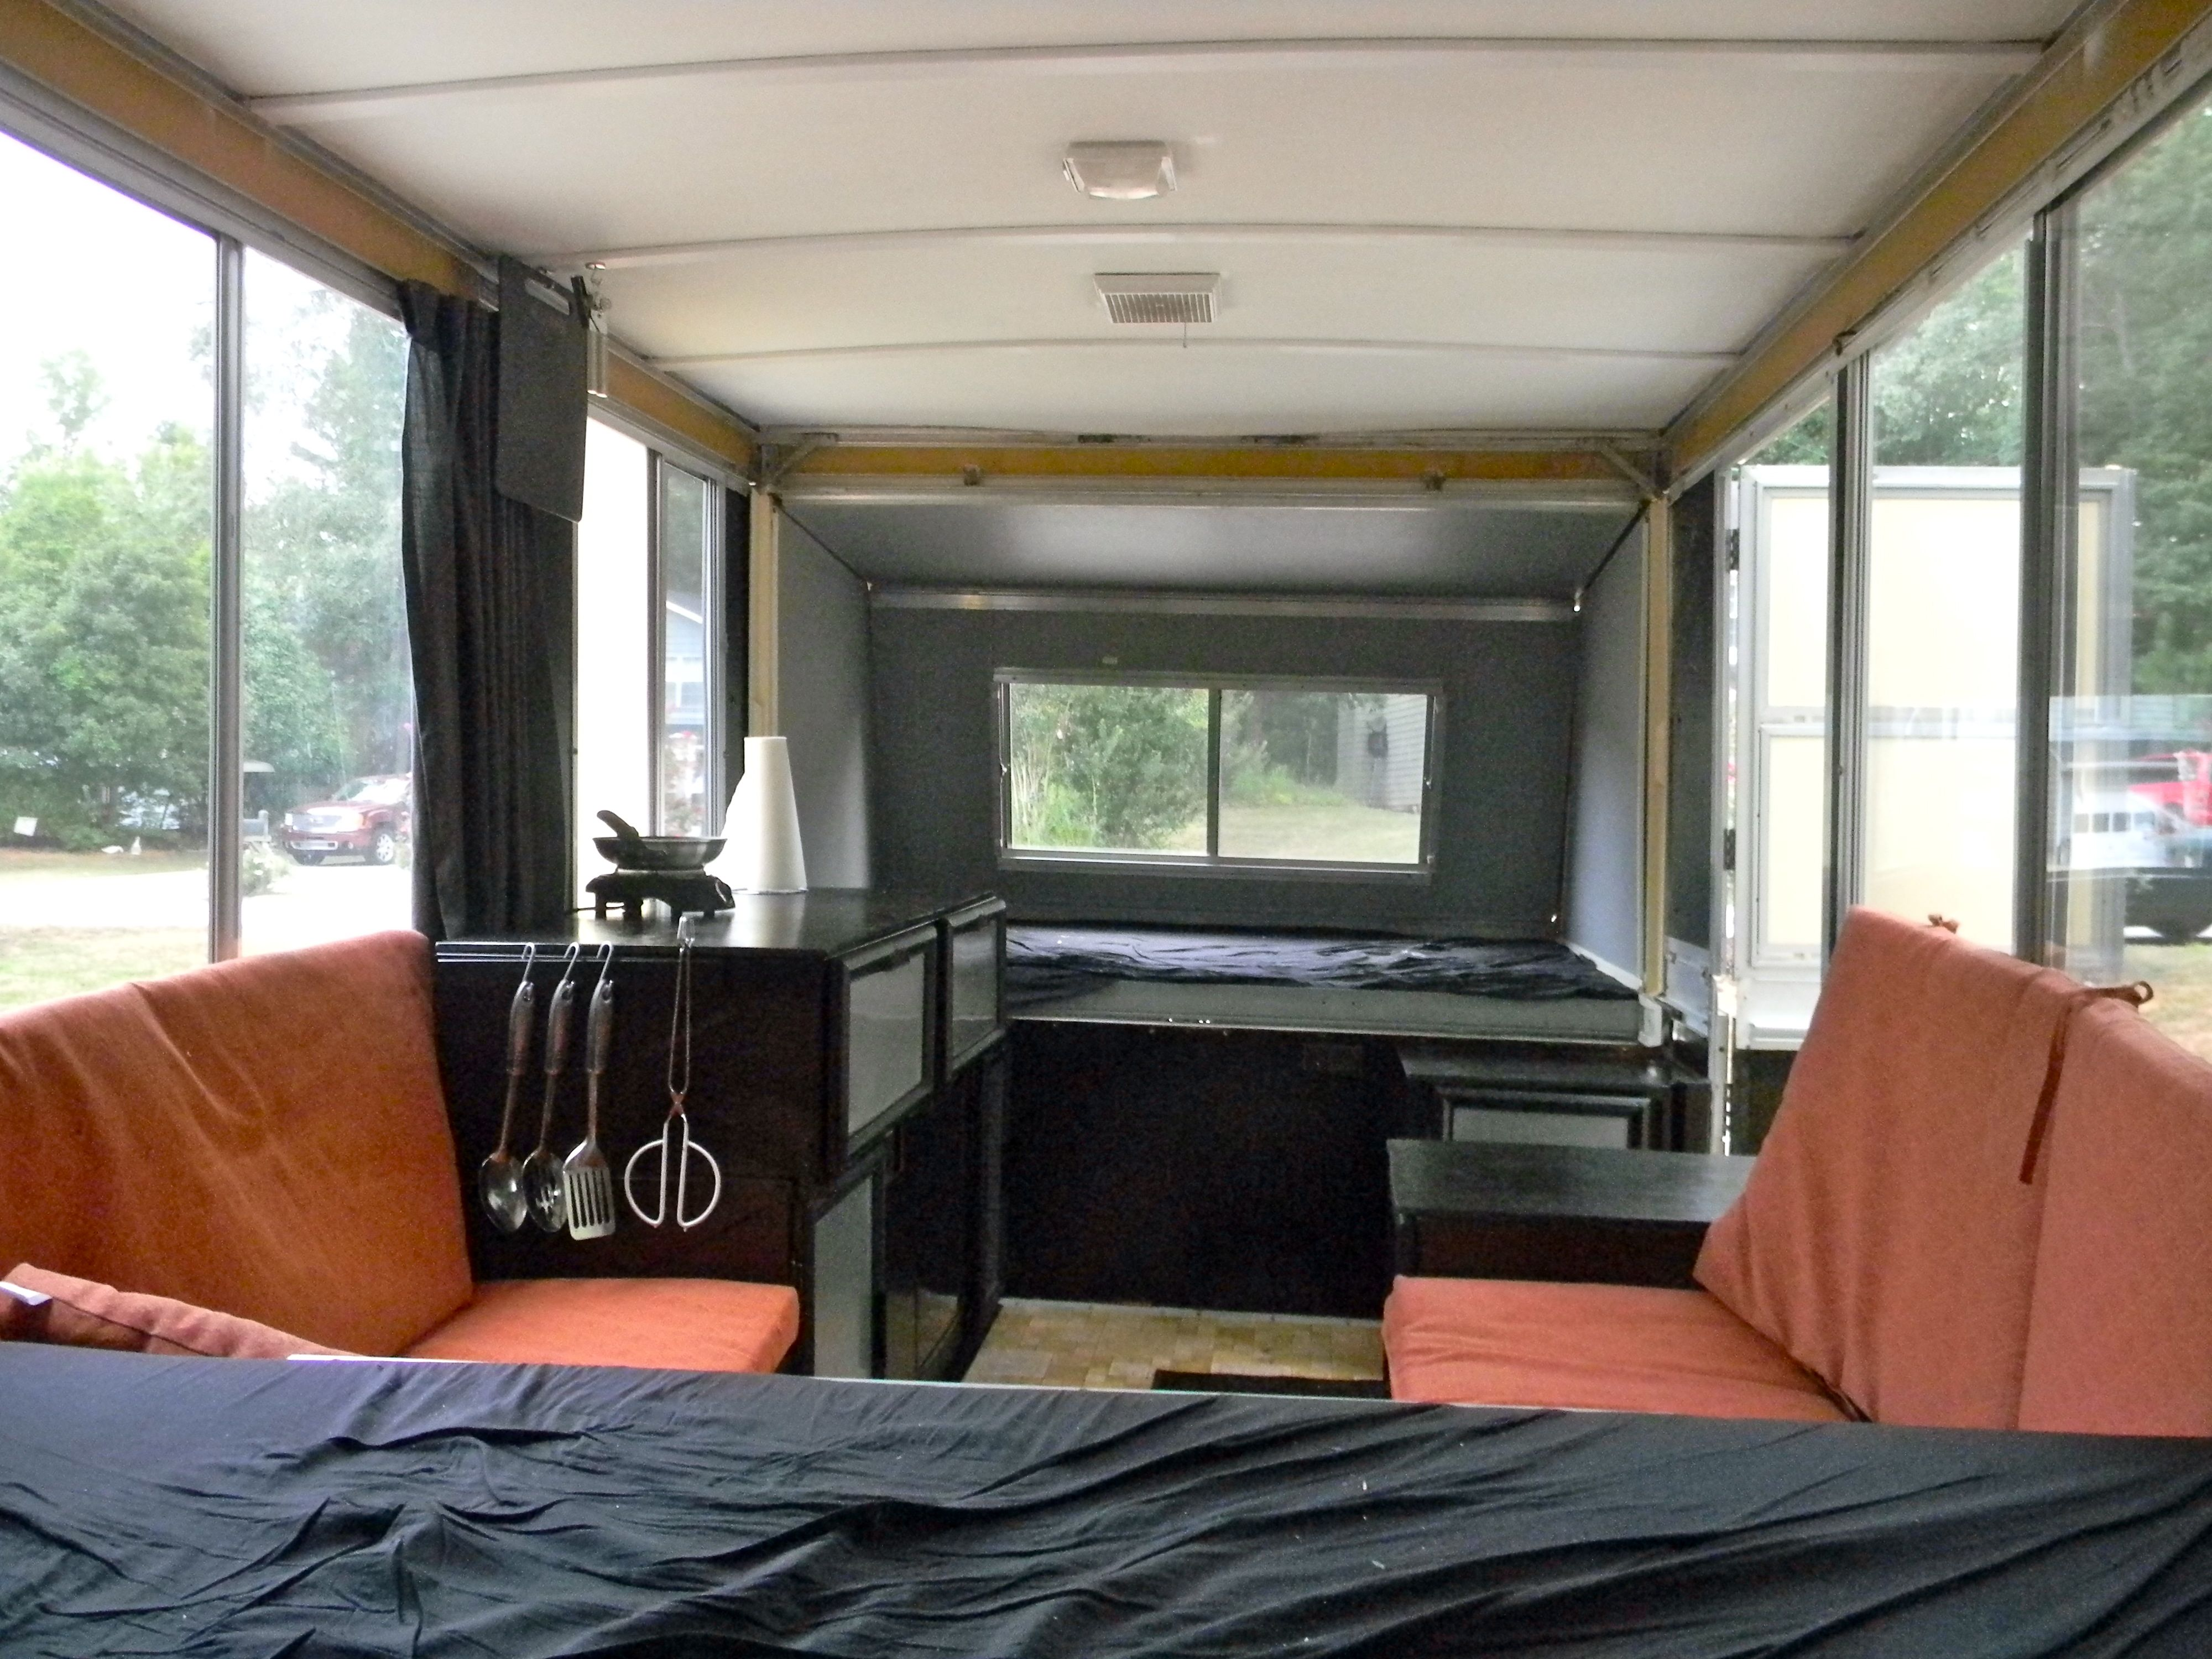 Length of apache camper ceiling walls and cabinets painted outdoor cushions added